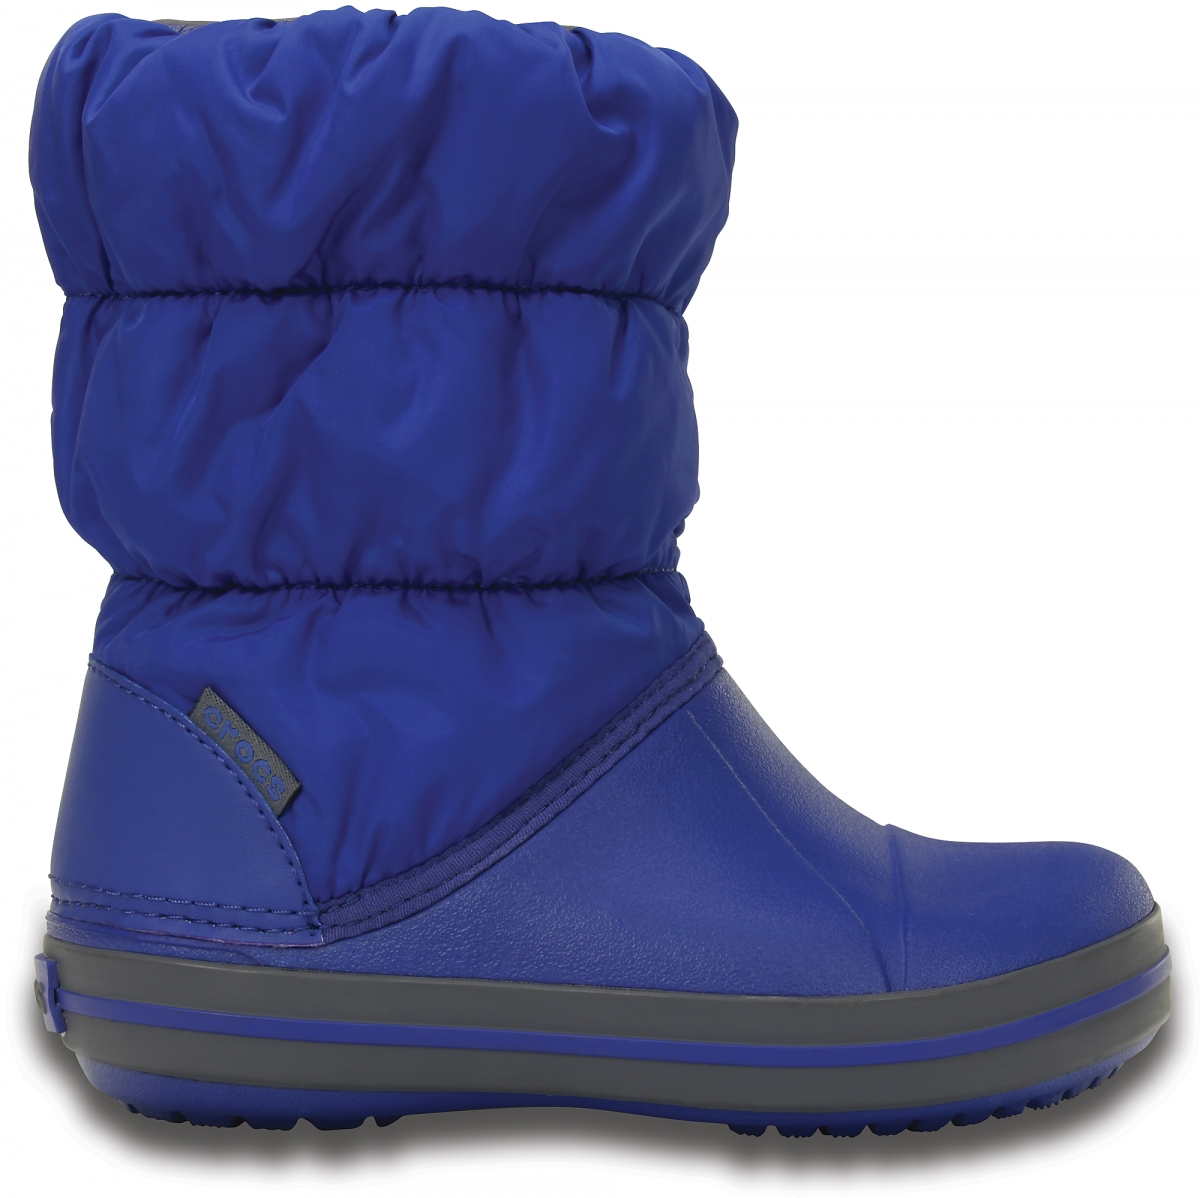 Crocs Winter Puff Boot Kids - Cerulean Blue/Light Grey, J3 (34-35)